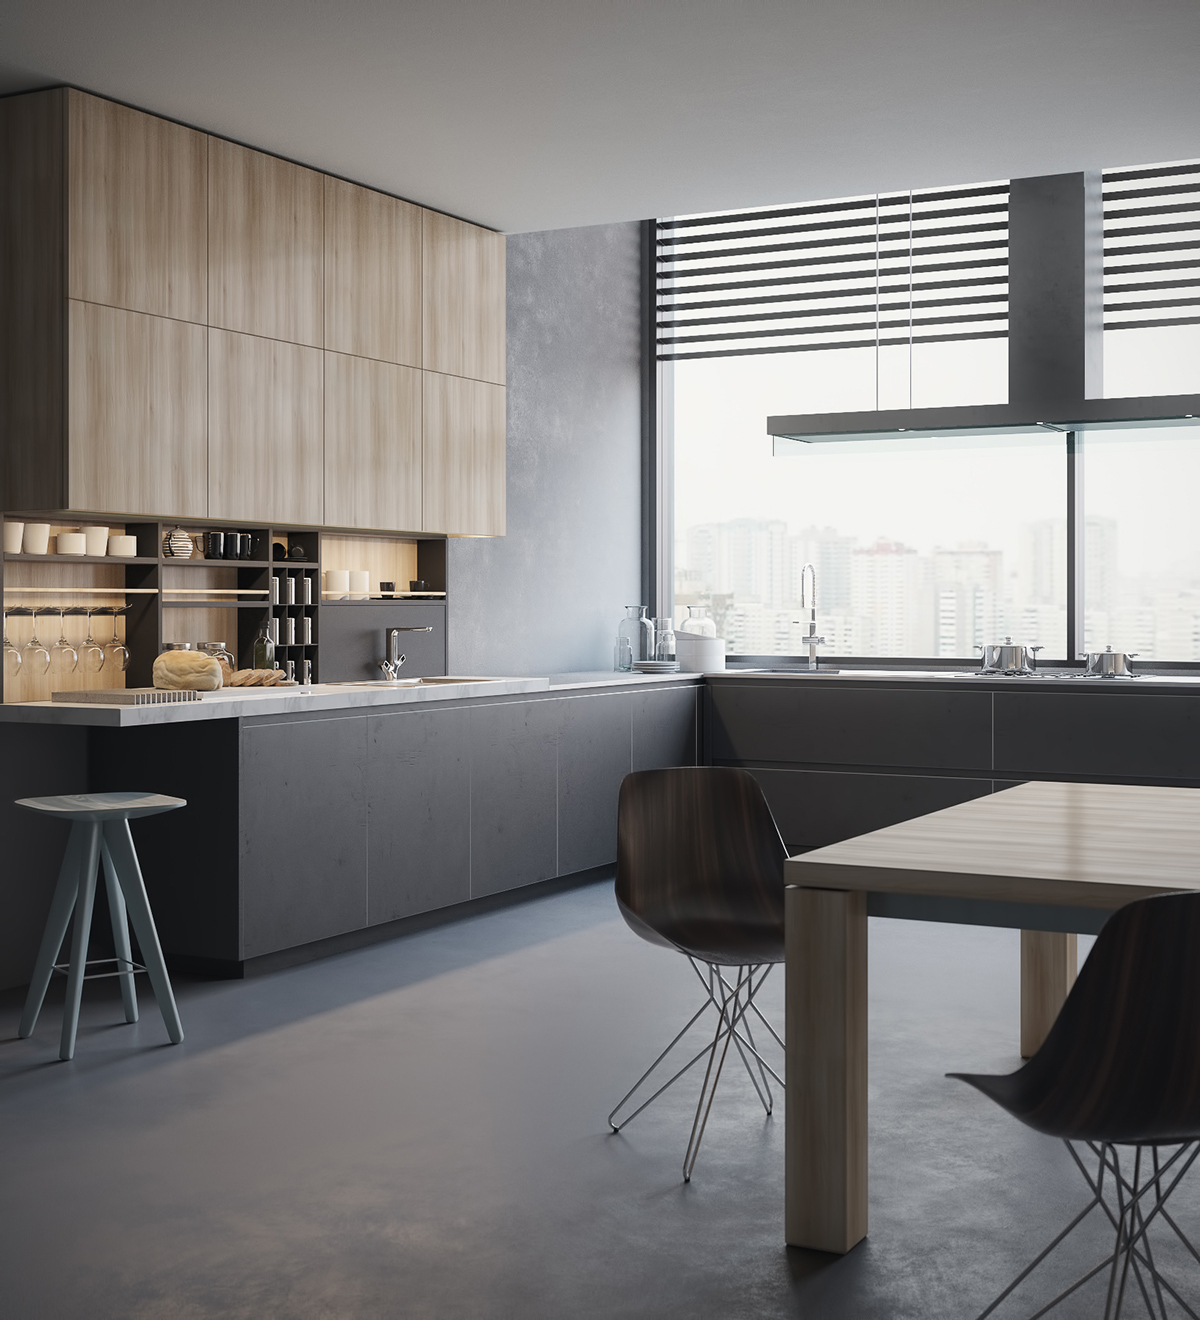 Kitchen 3D visualization Poliform on Behance